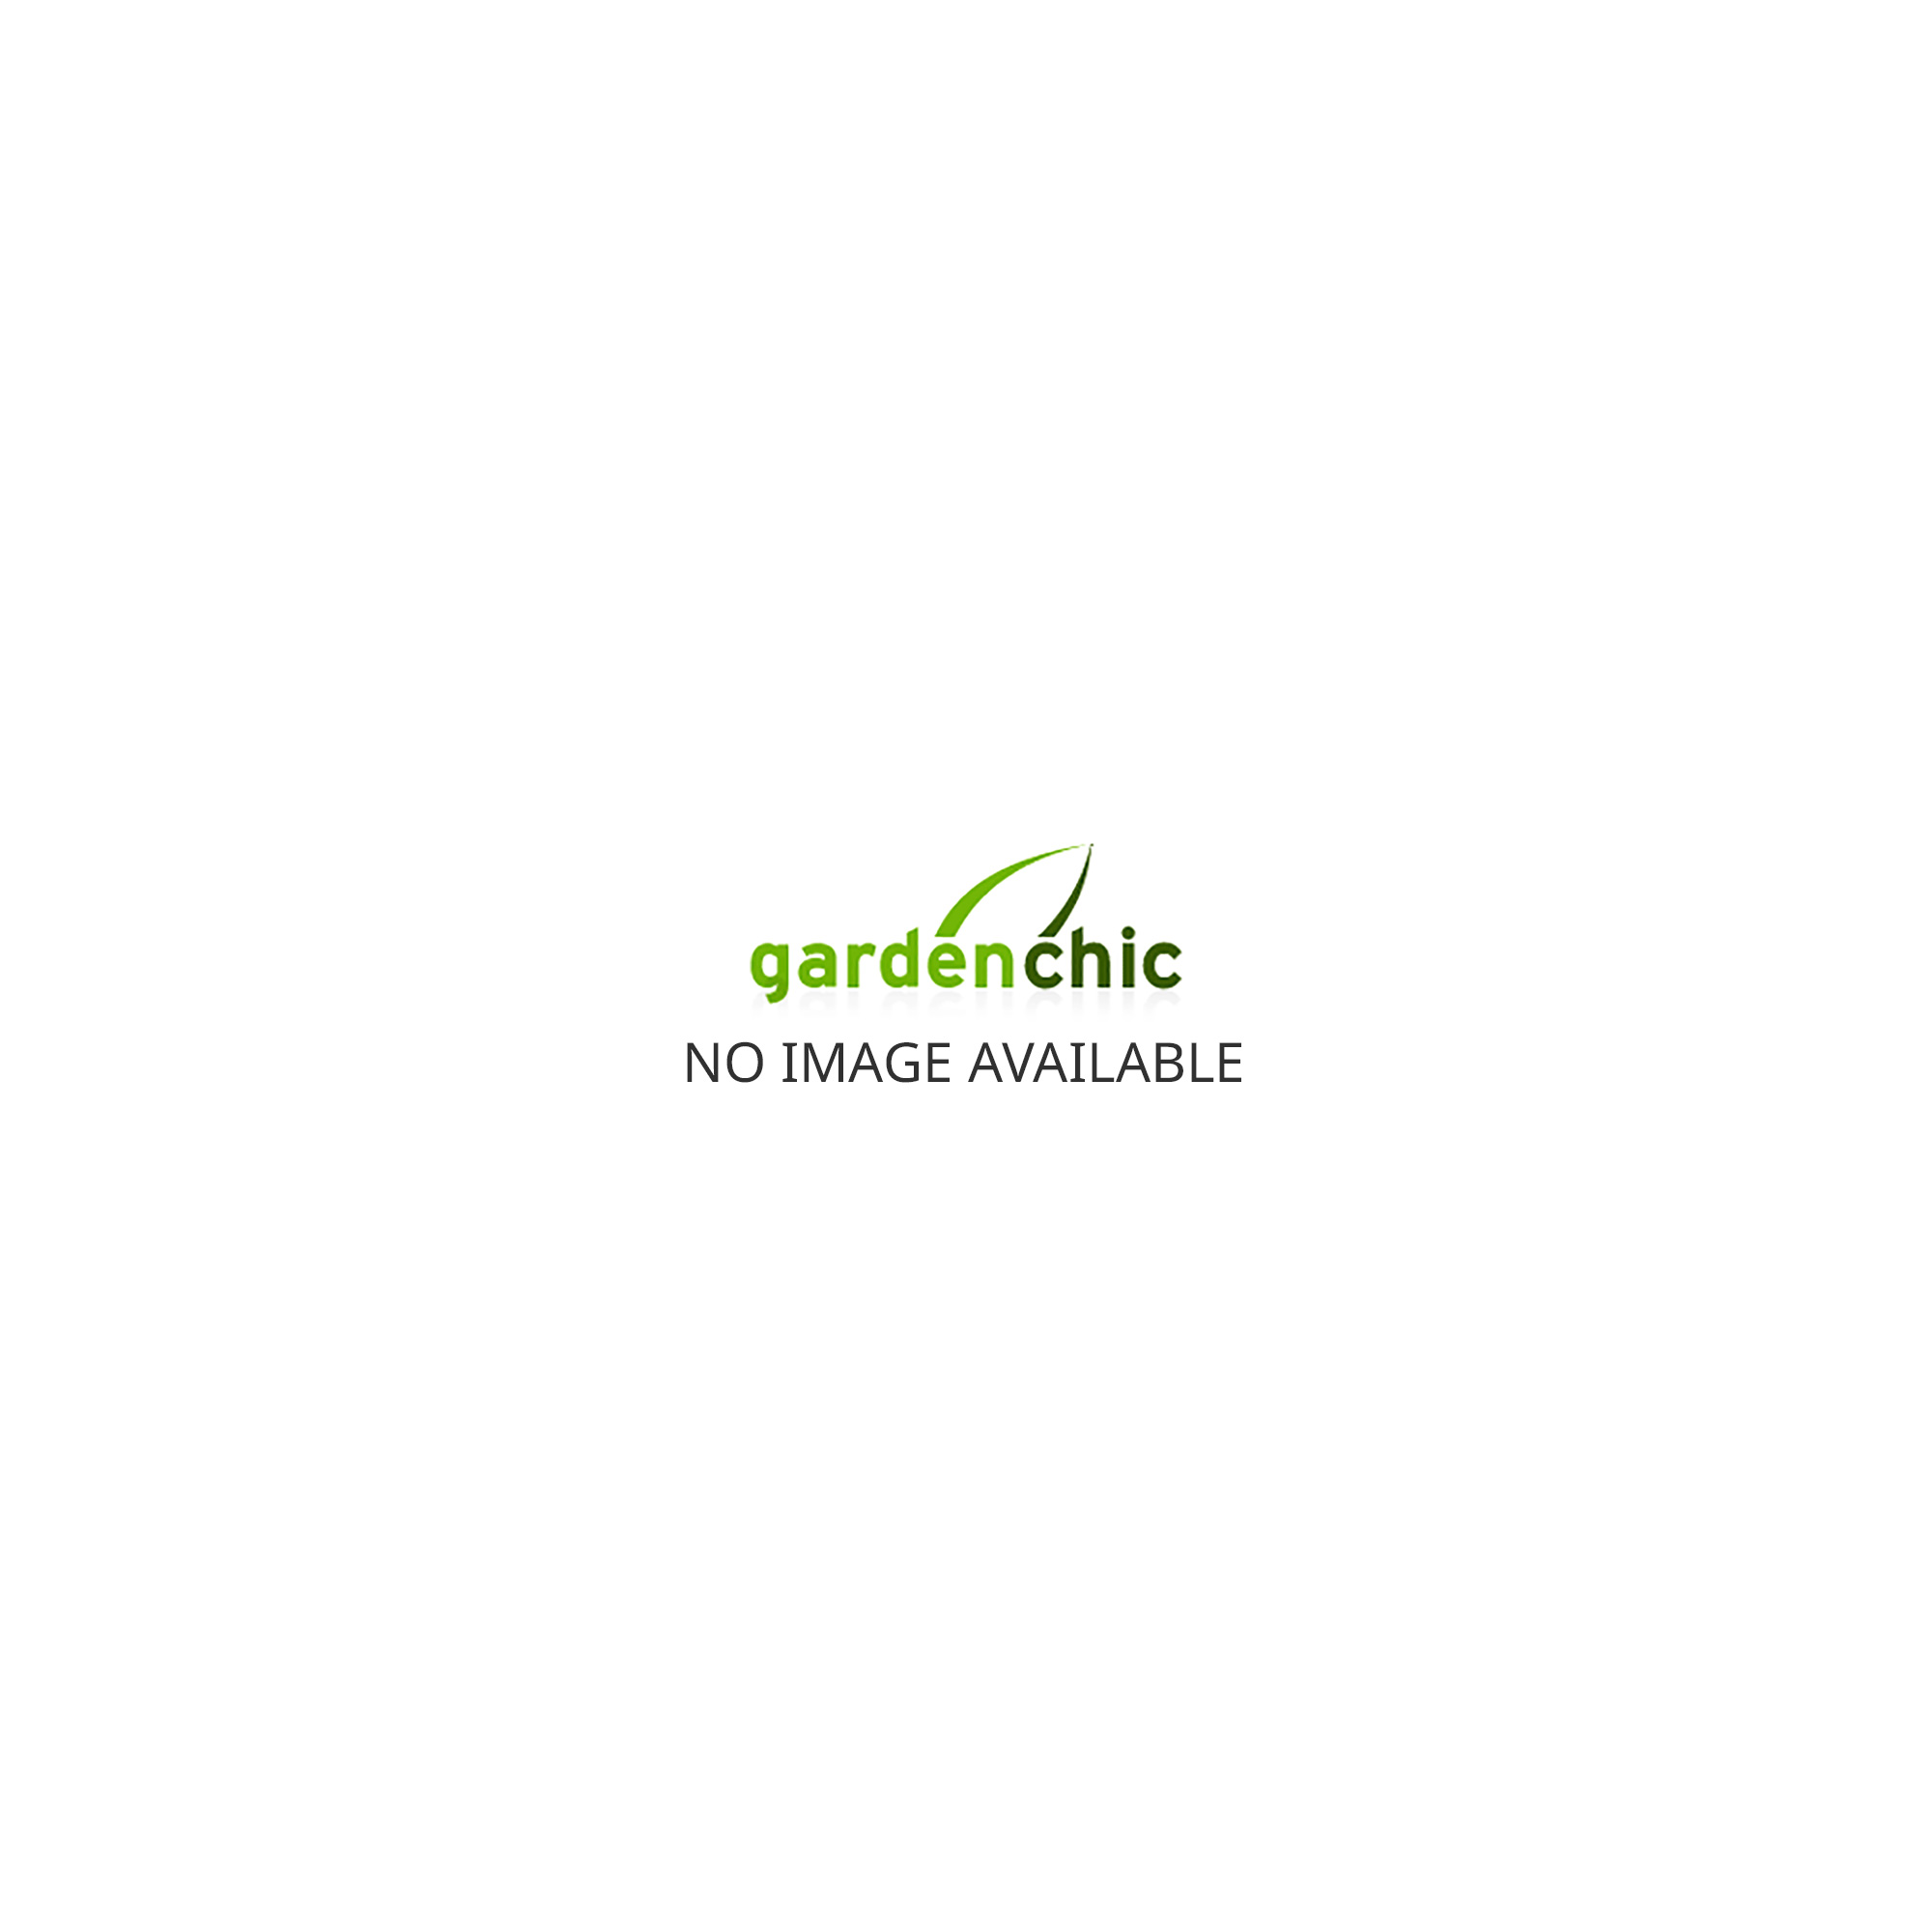 Vitavia Apollo 3800 Greenhouse - Green FREE Staging until APRIL 2018